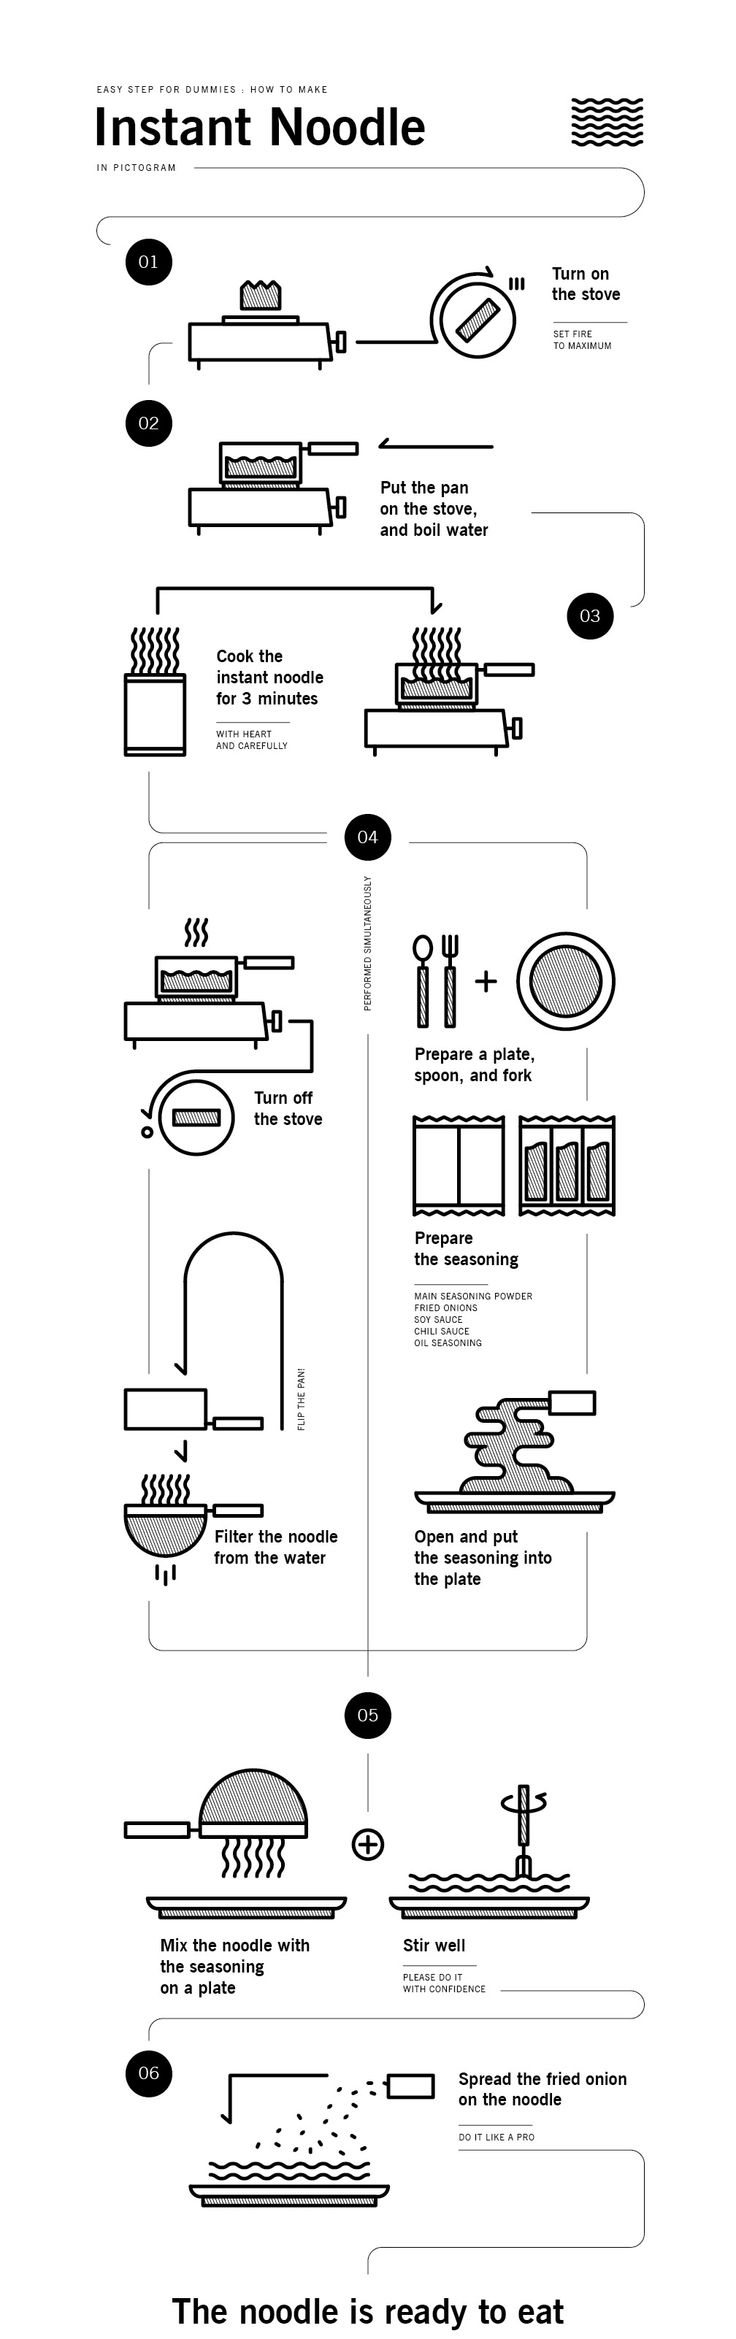 Instant Noodle for Dummies on Behance